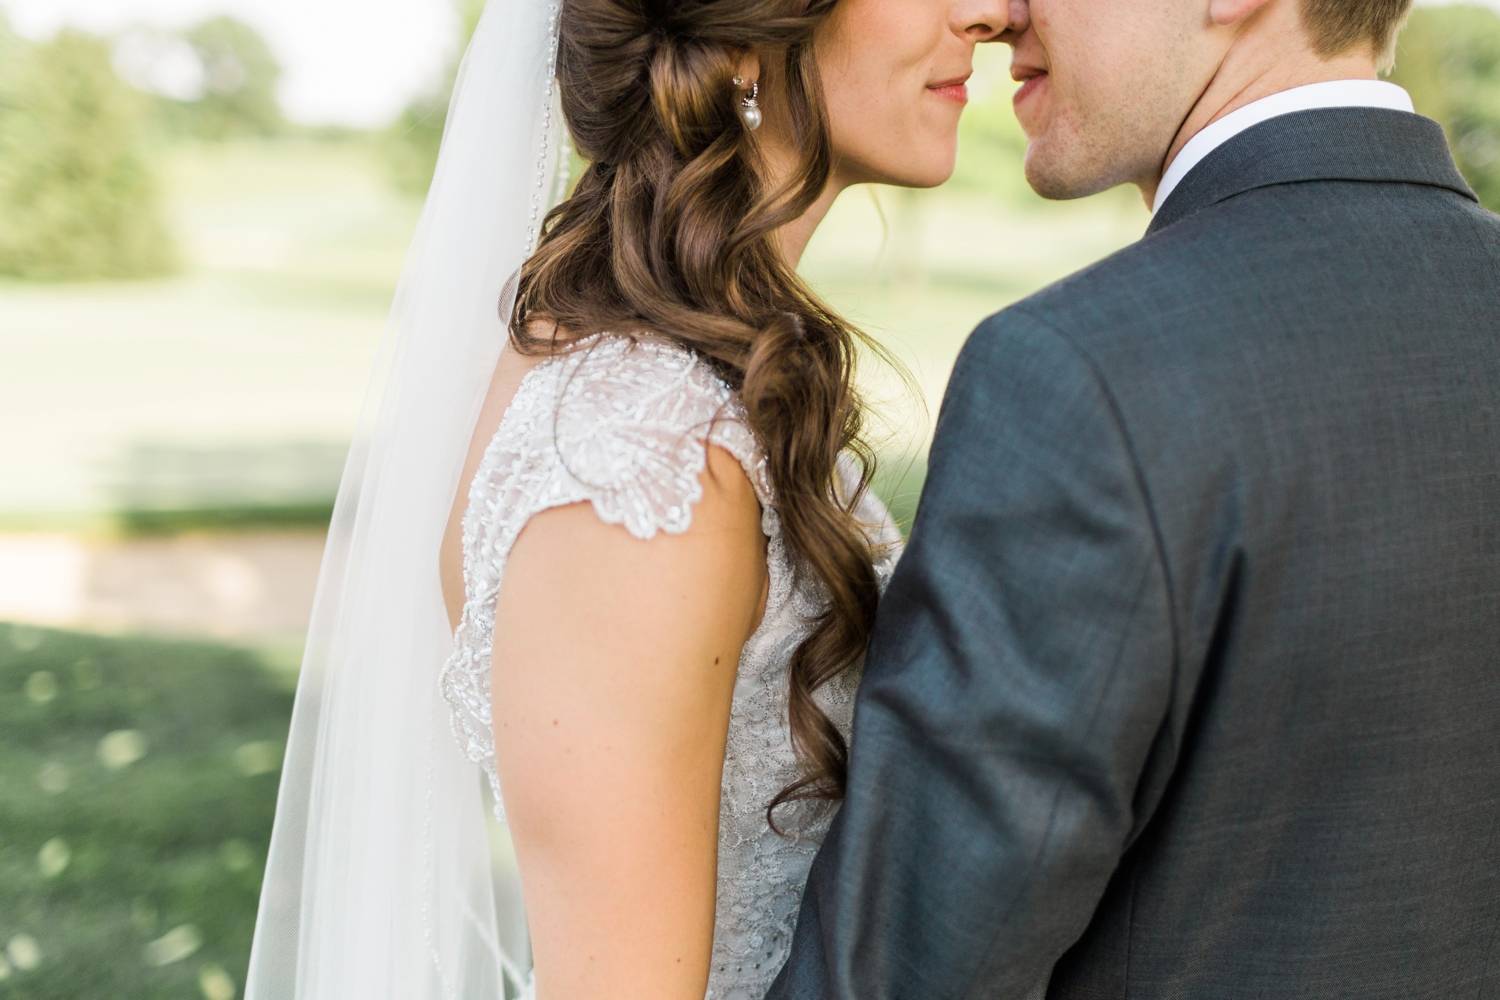 NCR_Country_Club_Kettering_Ohio_Wedding_Photography_Chloe_Luka_Photography_7159.jpg